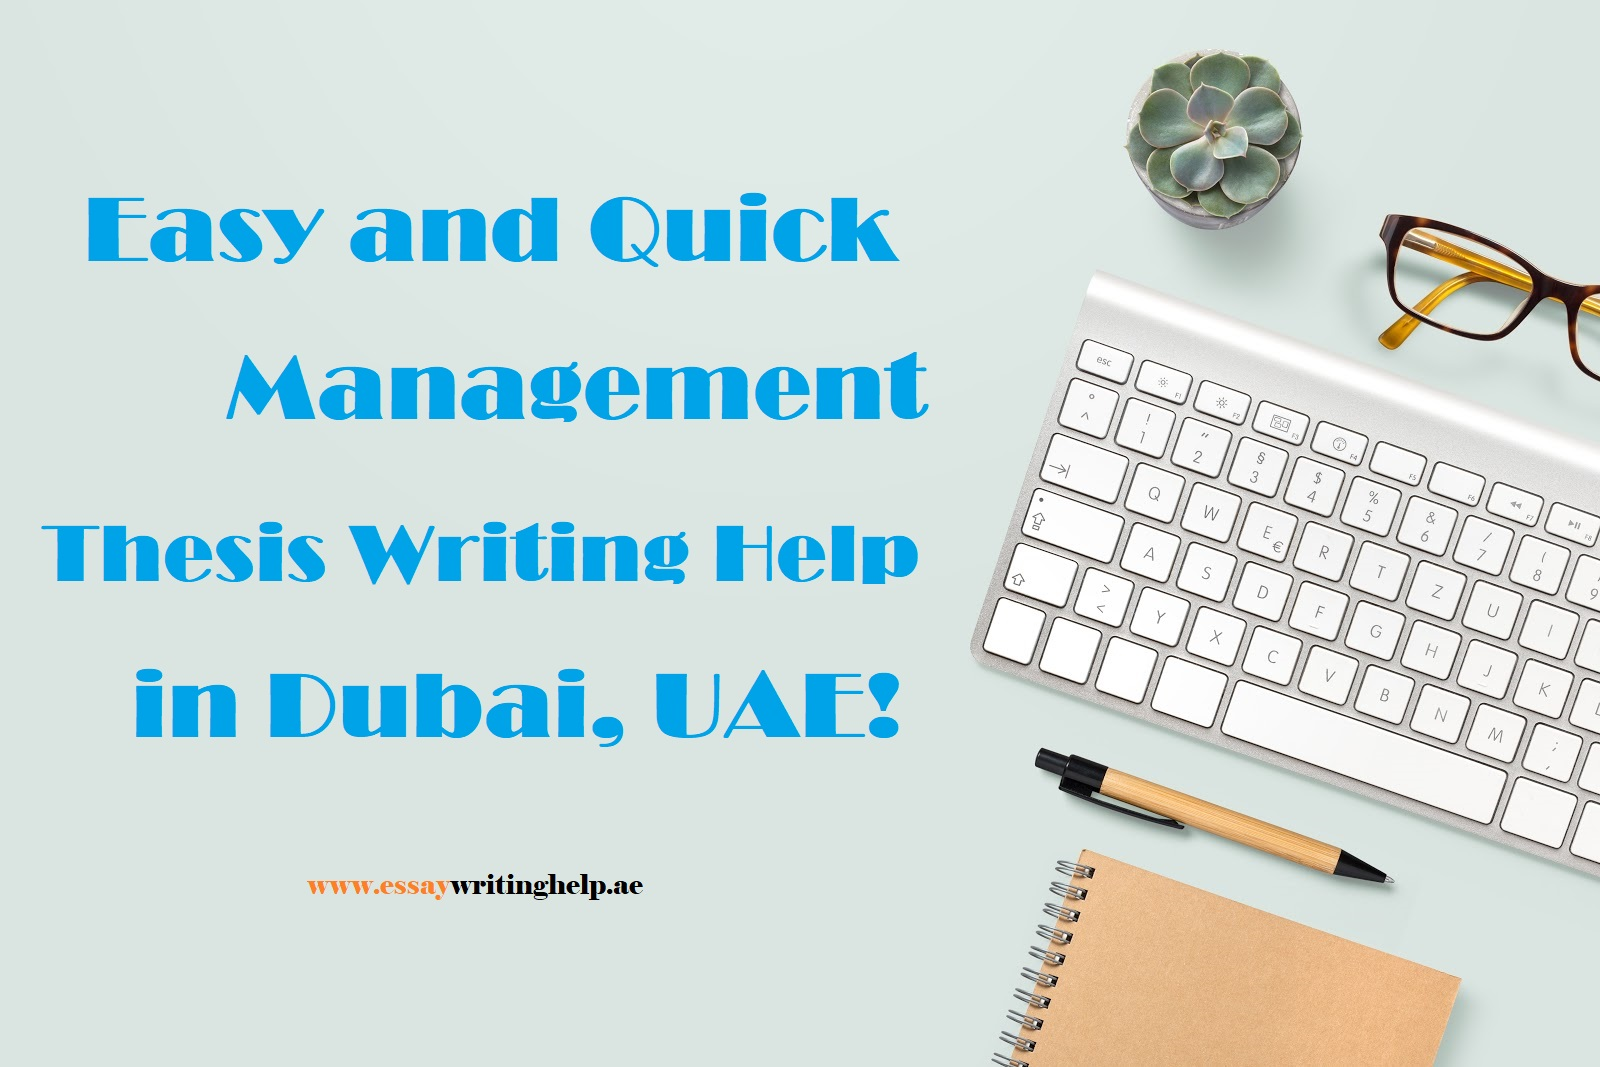 Easy and Quick Management Thesis Writing Help in Dubai!